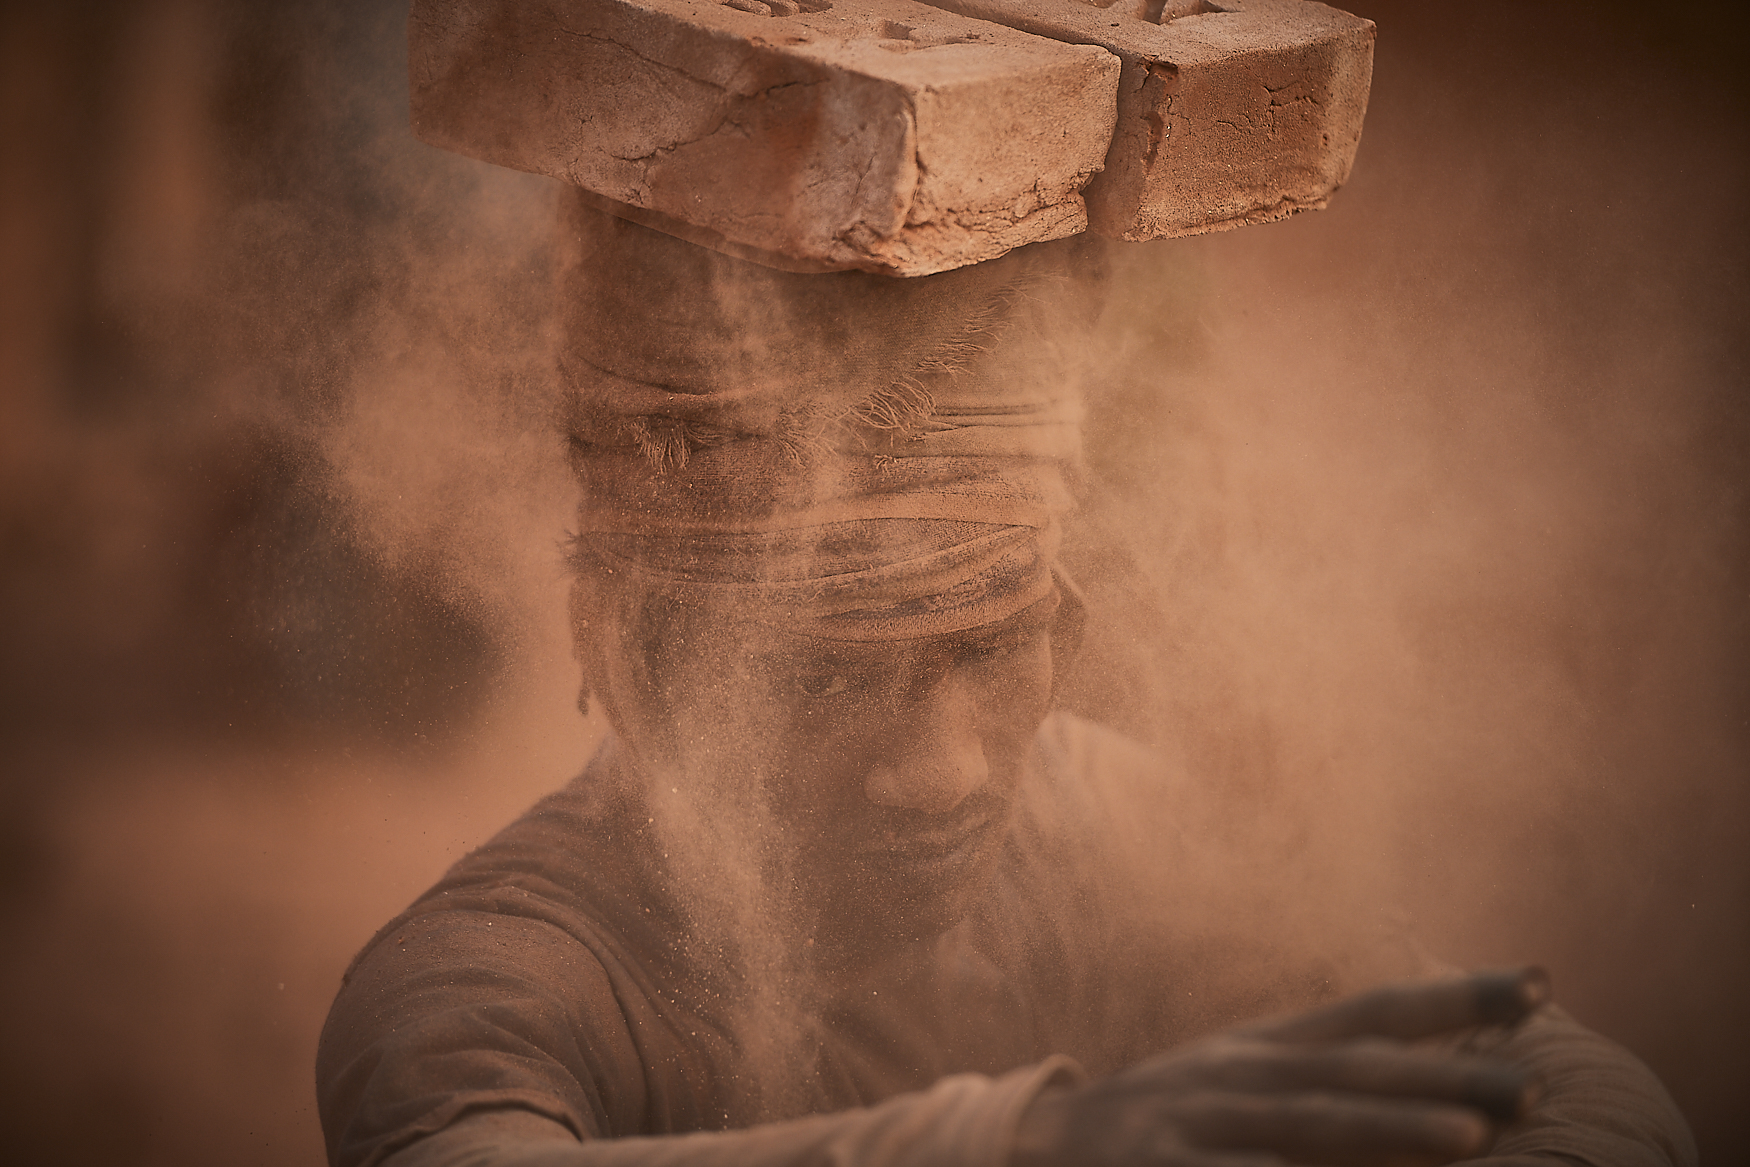 worker removing baked bricks from the kiln